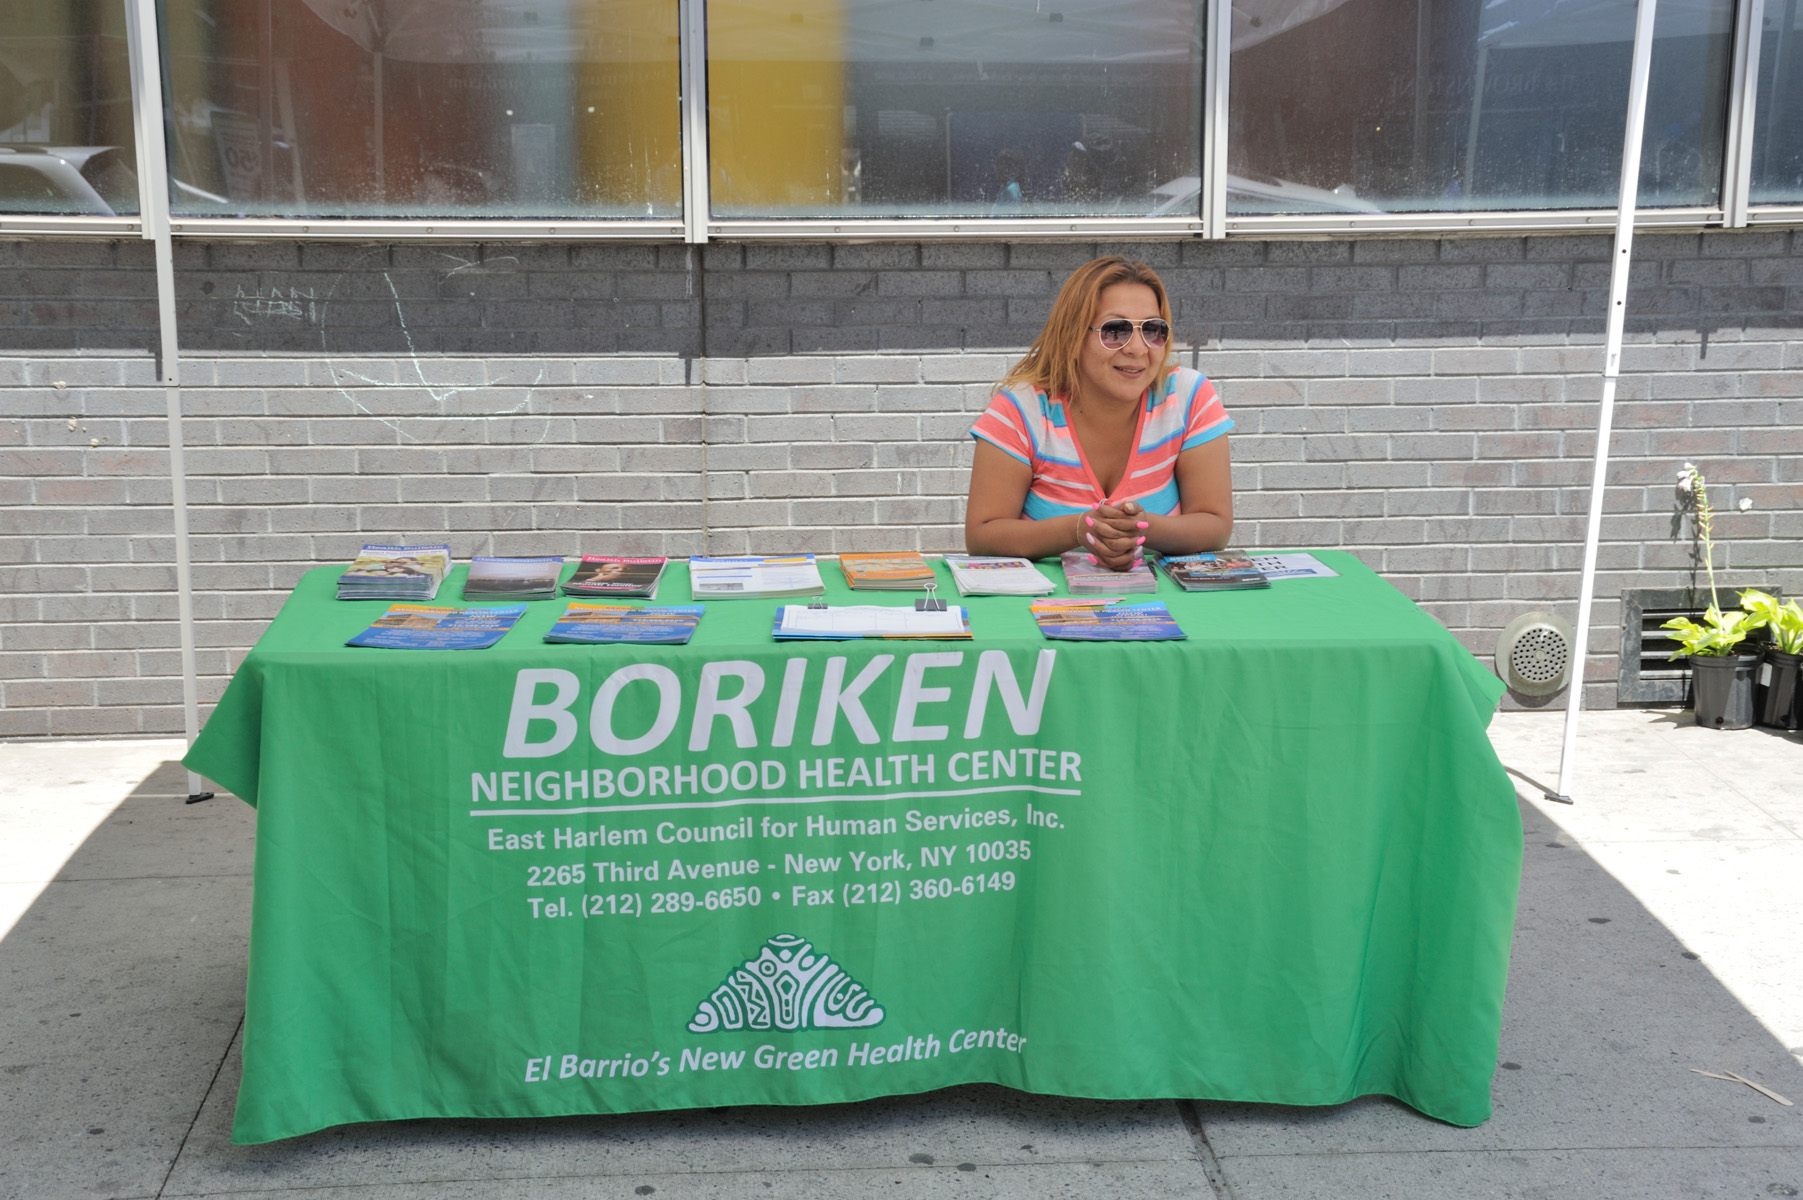 Boriken Neighborhood Health Center